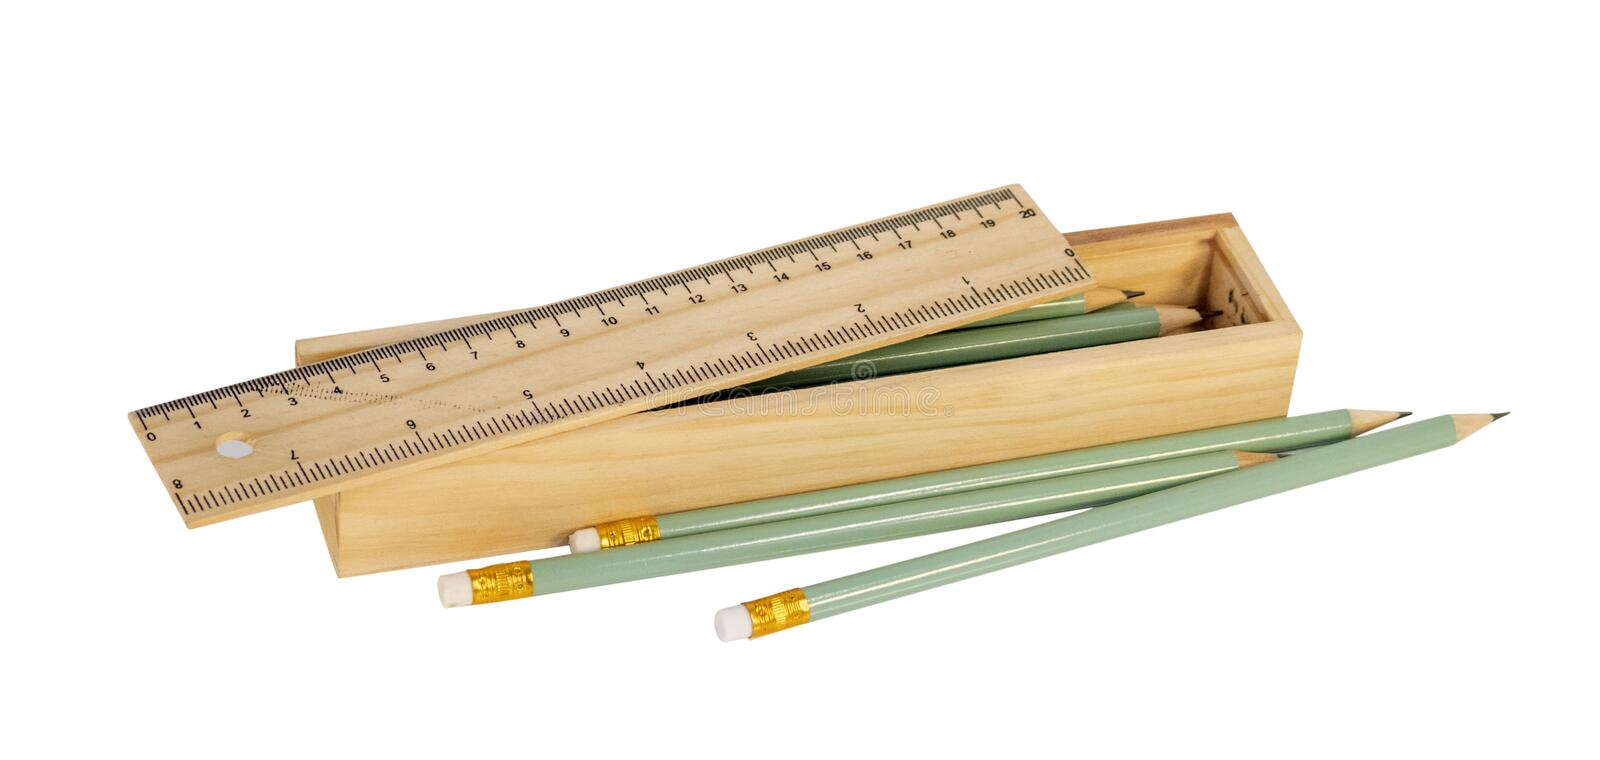 Ruler and pencils royalty free stock photos